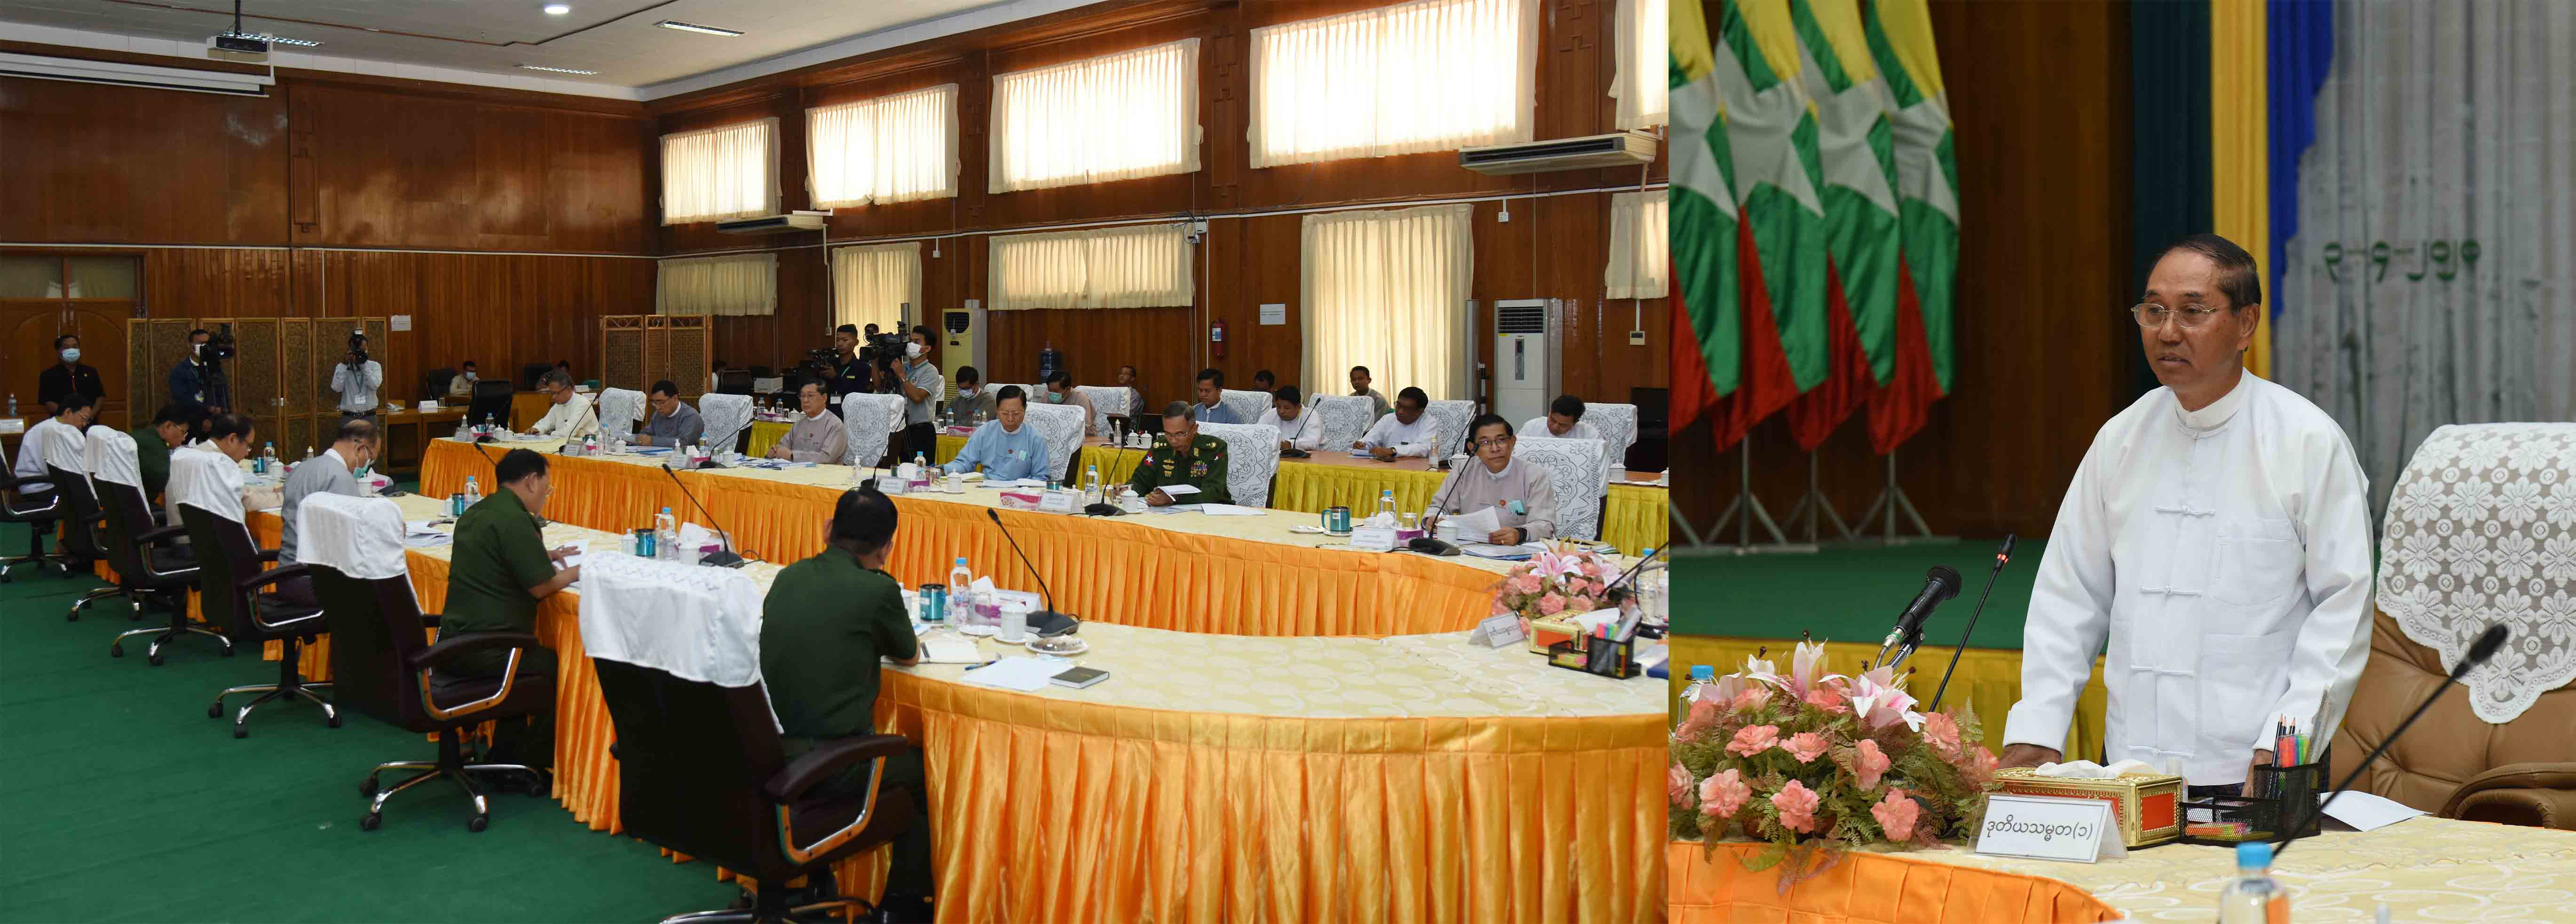 Vice President U Myint Swe delivers the speech at the meeting of the Coronavirus Disease 2019 Containment and Emergency Response Committee in Nay Pyi Taw yesterday.Photo: MNA